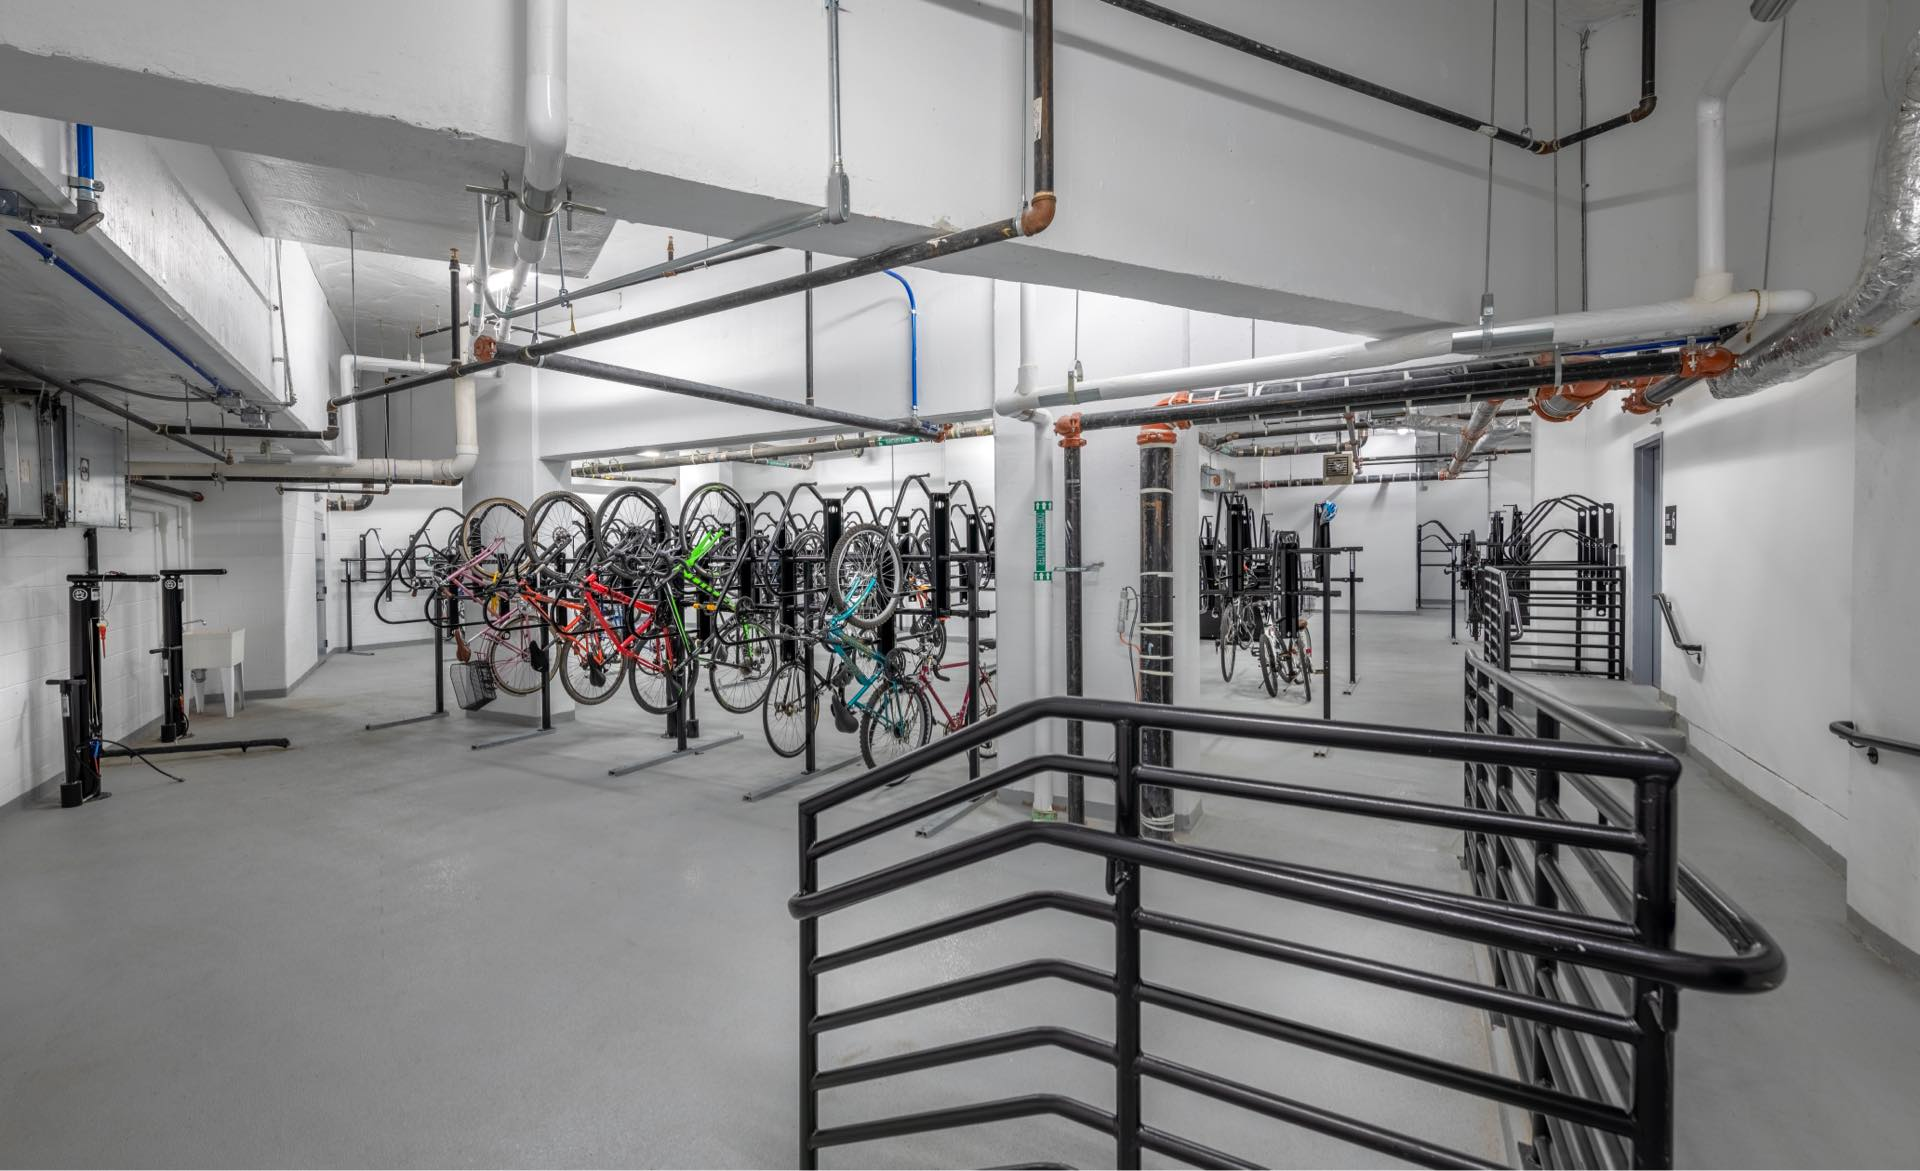 Complimentary bicycles, bicycle storage, and repair area.